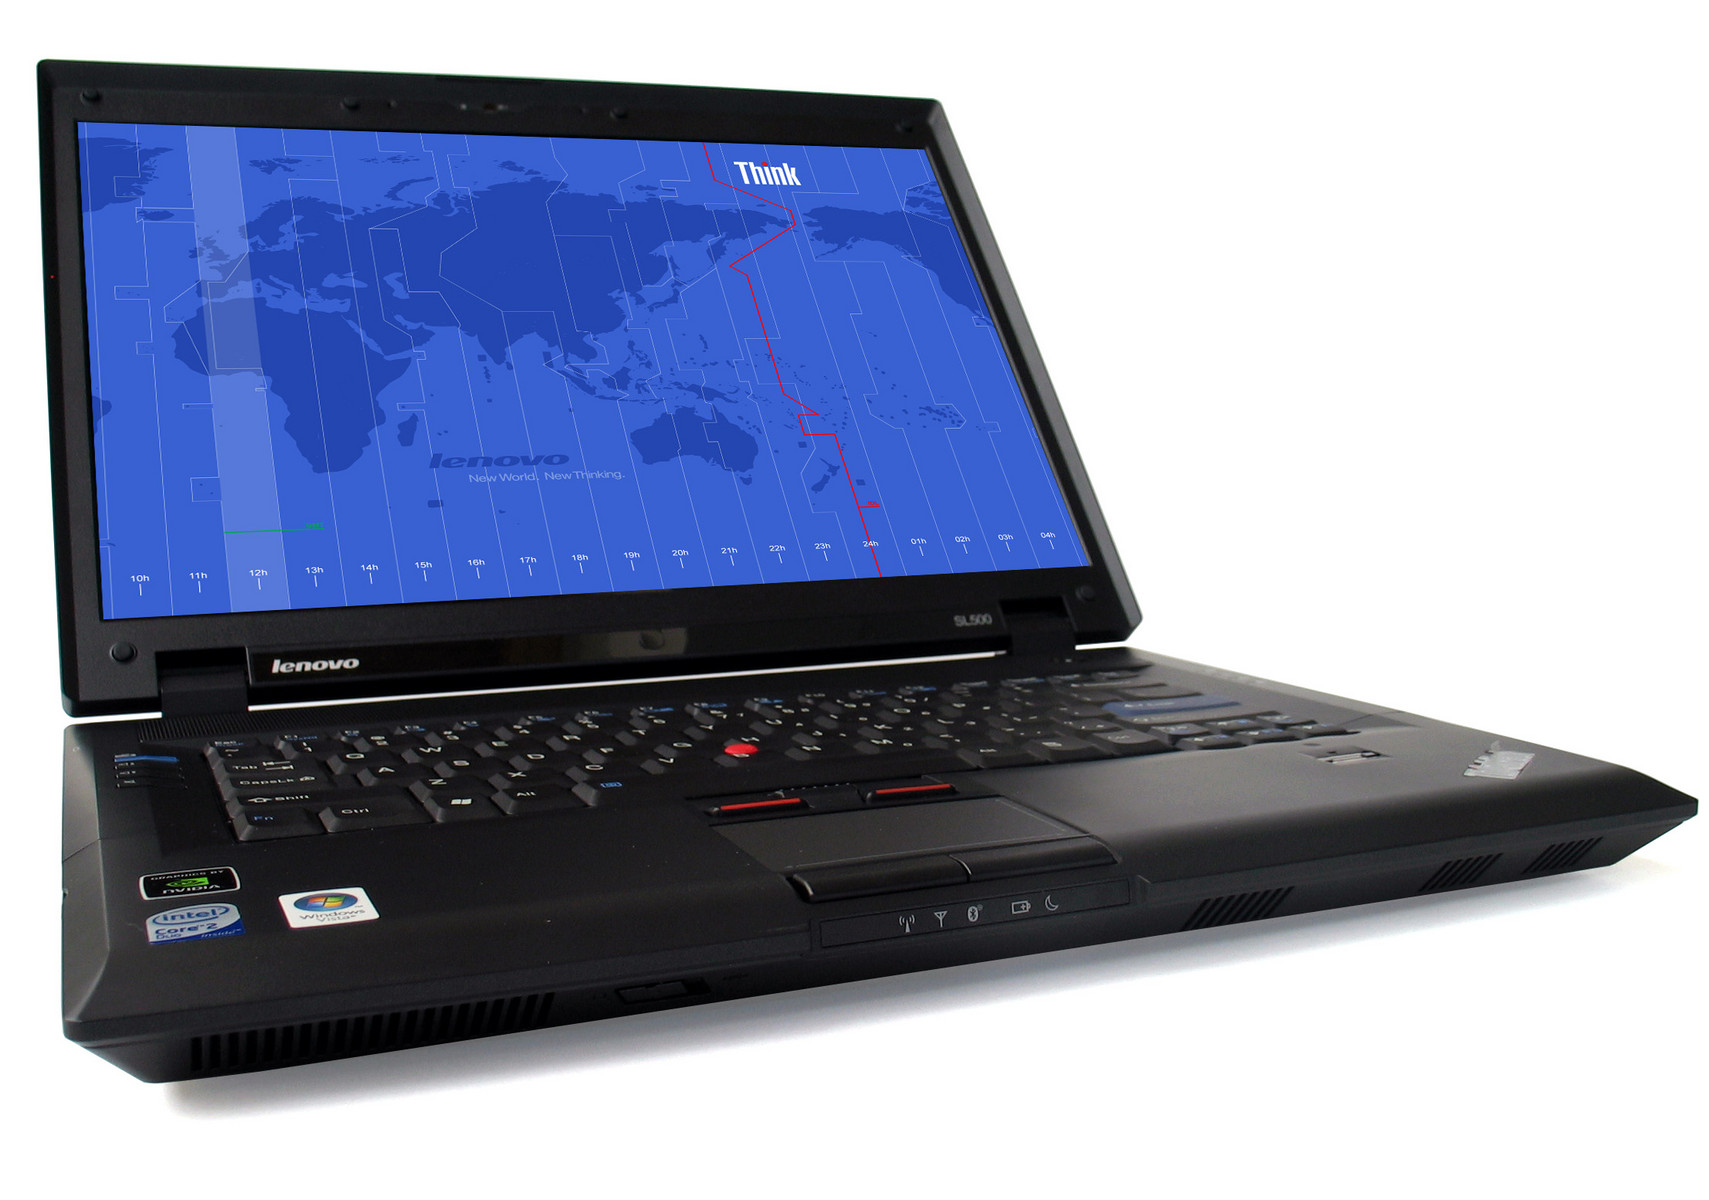 Lenovo Laptop Lenovo Thinkpad Sl500 Notebookcheck External Reviews